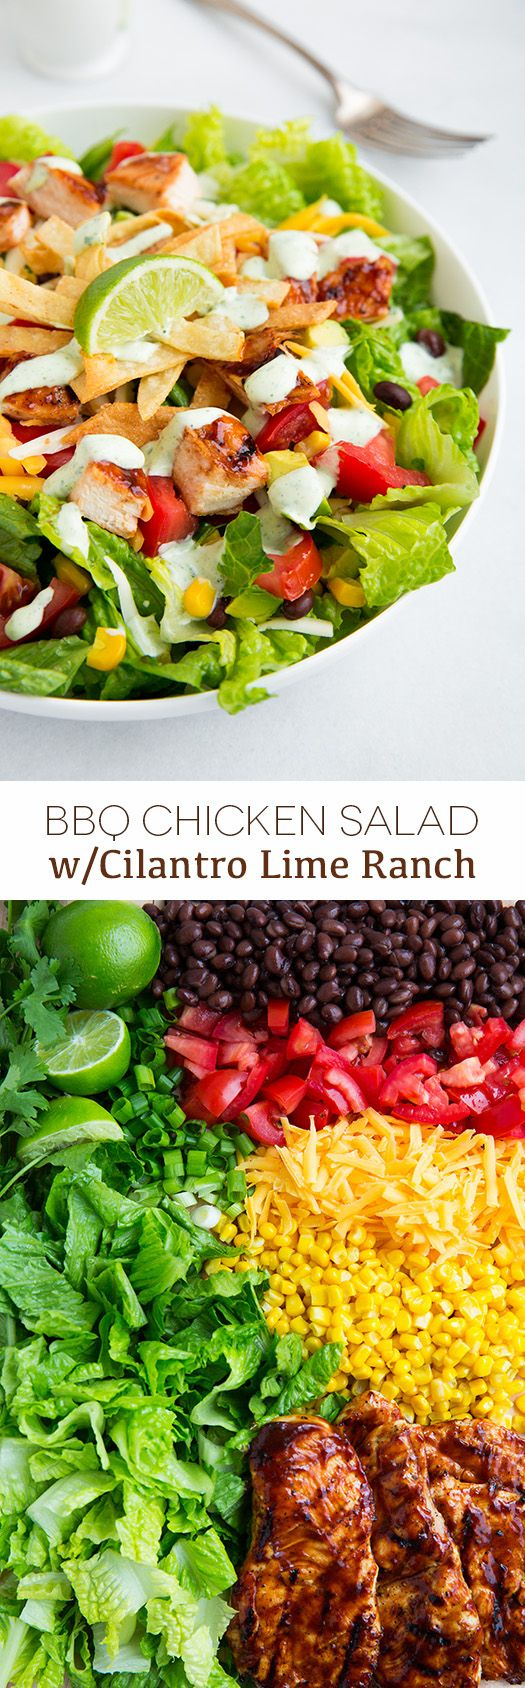 BBQ Chicken Salad with Cilantro Lime Ranch - this salad is amazing!